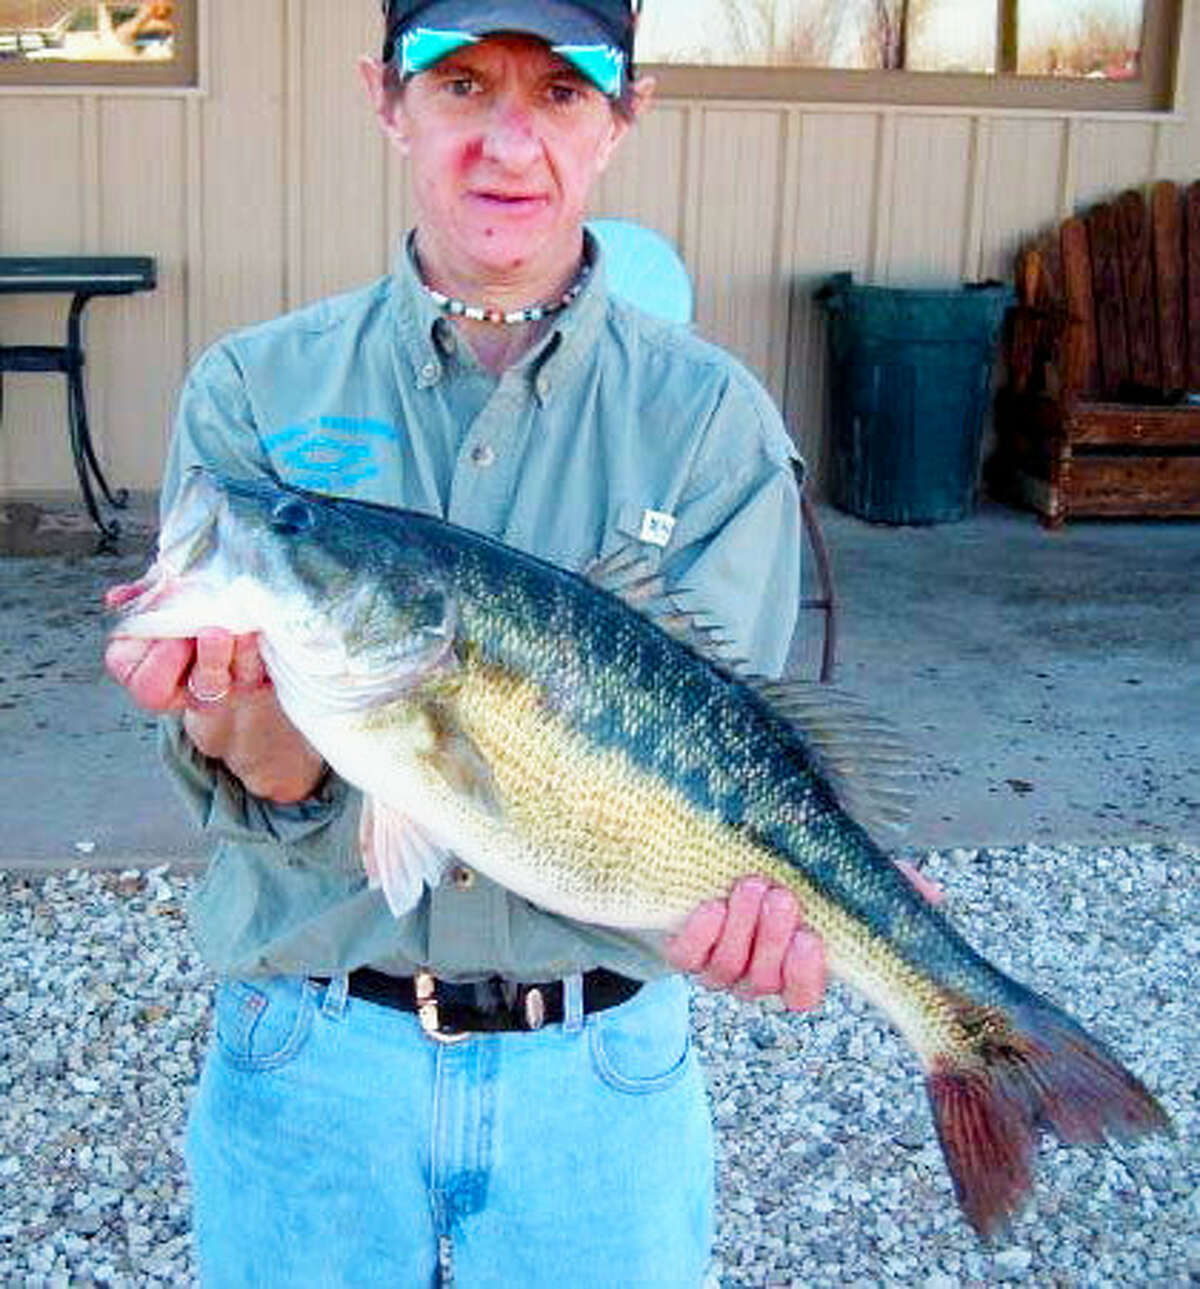 Where:Lake Alan Henry Fish:Alabama Bass Weight:5.98 Length:22.25 Date Caught:Jan. 9, 2016 *Record fish not pictured*